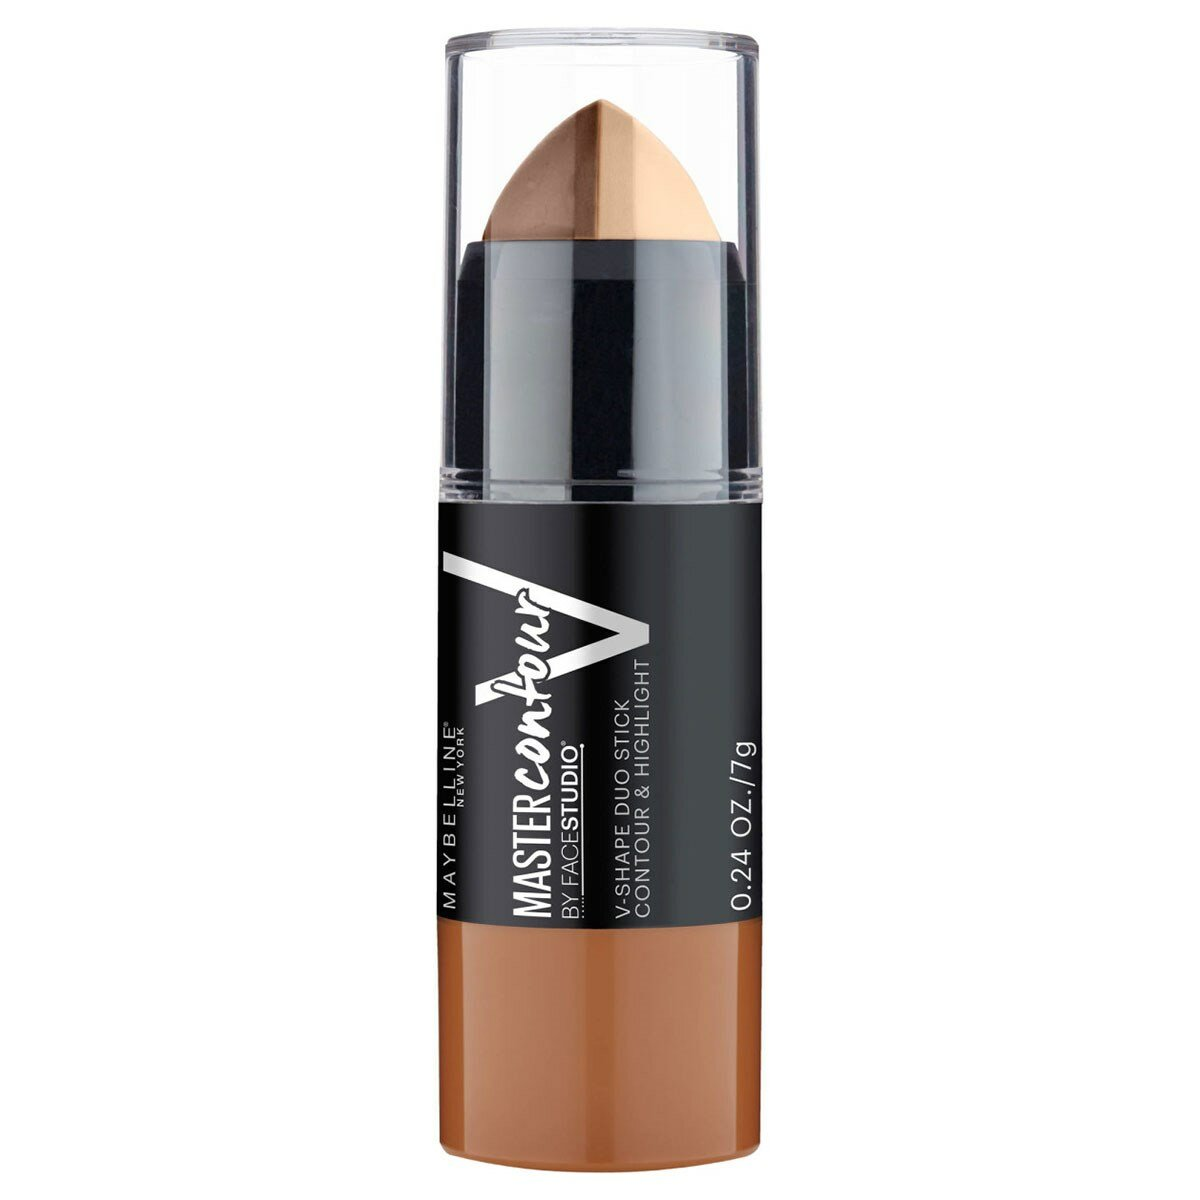 Maybelline, Master contour stick